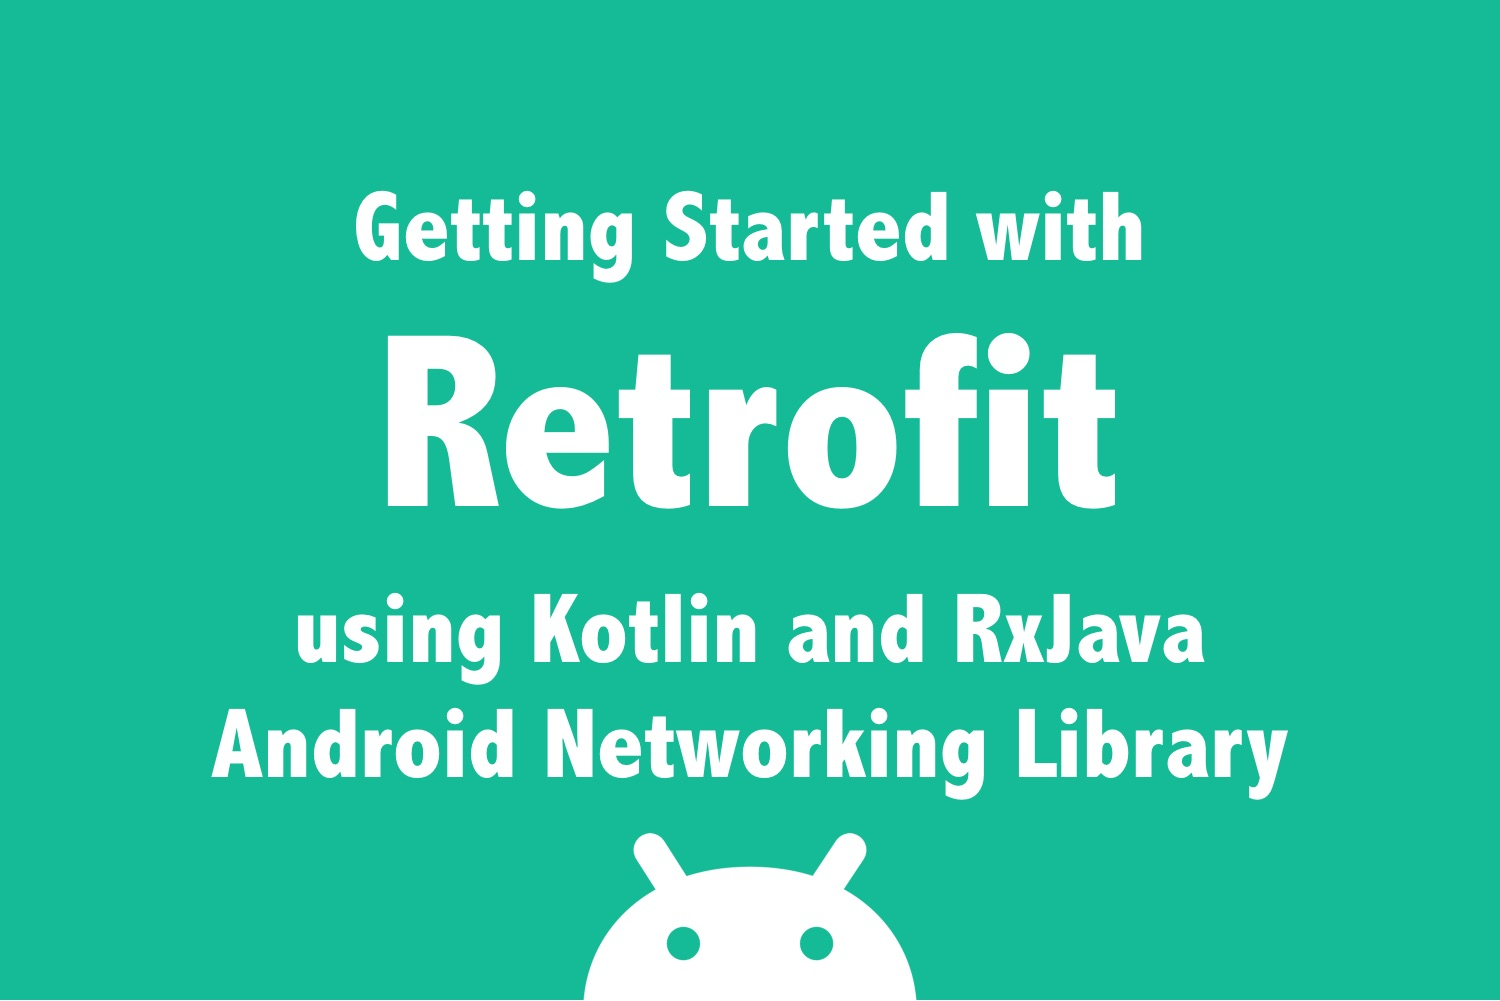 Getting Started with Retrofit using Kotlin  and  RxJava - Android Networking Library